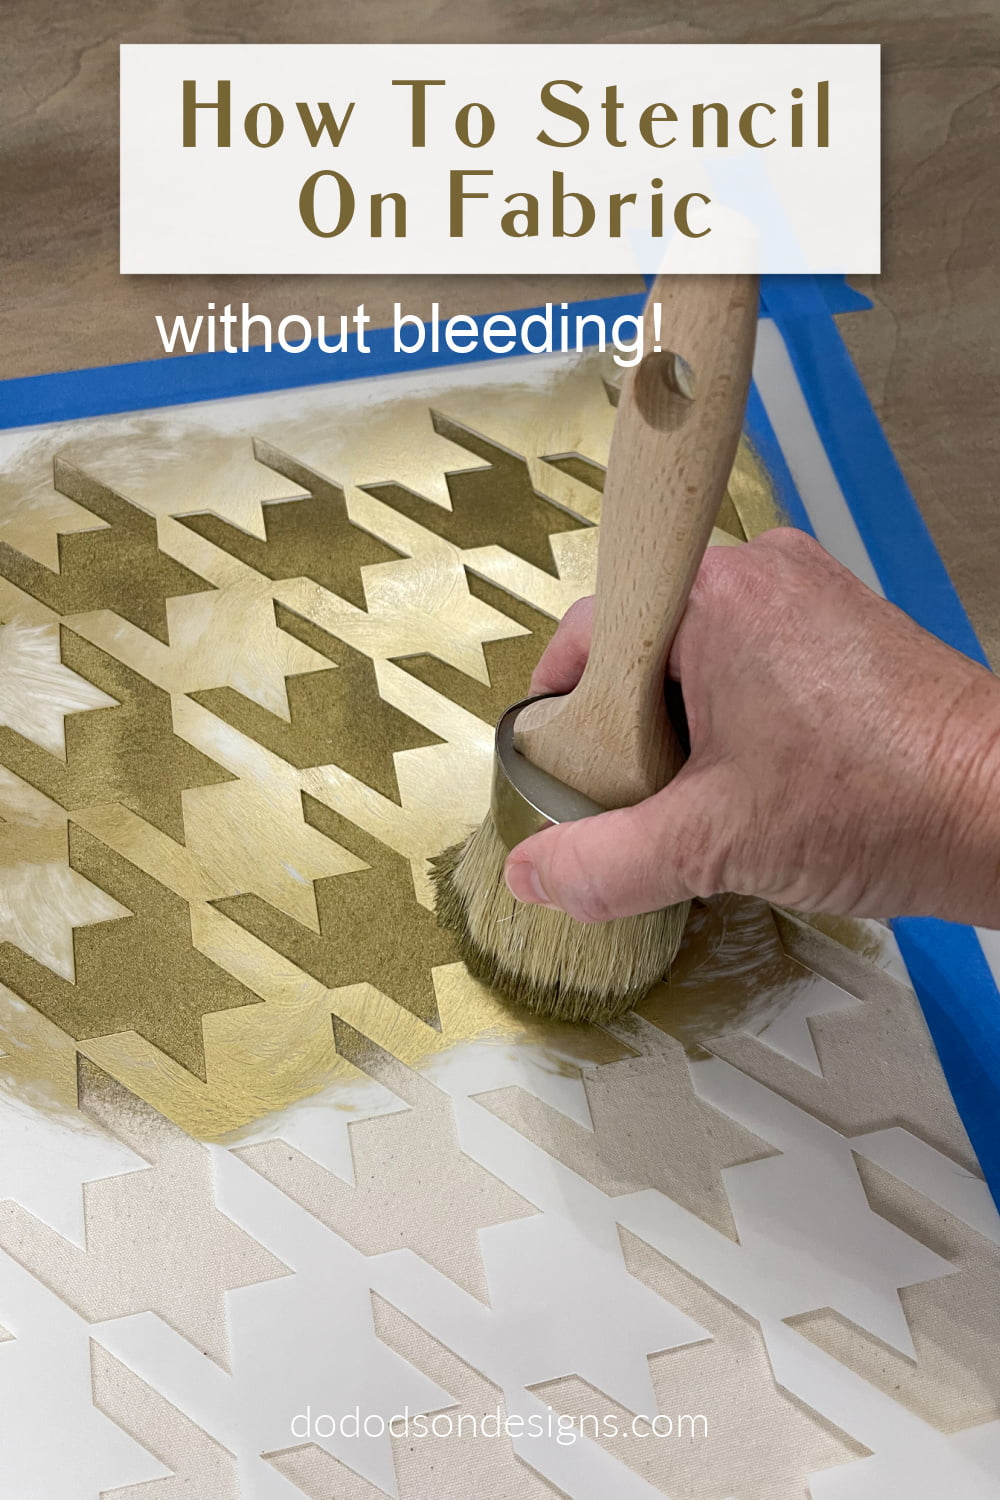 How To Stencil On Fabric Without Bleeding